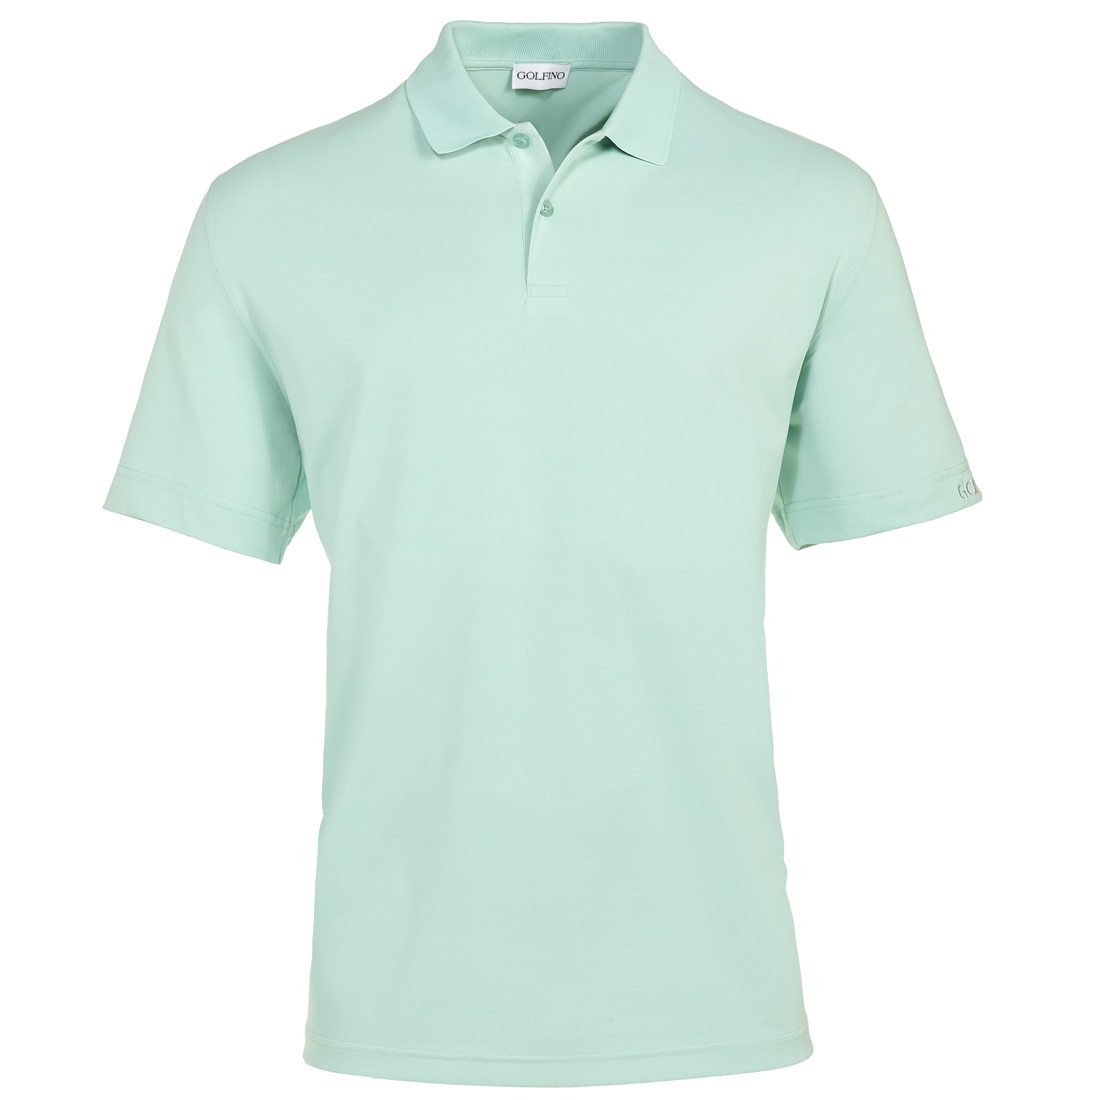 Leichtes Herren Golfpolo DRY Comfort in Regular Fit